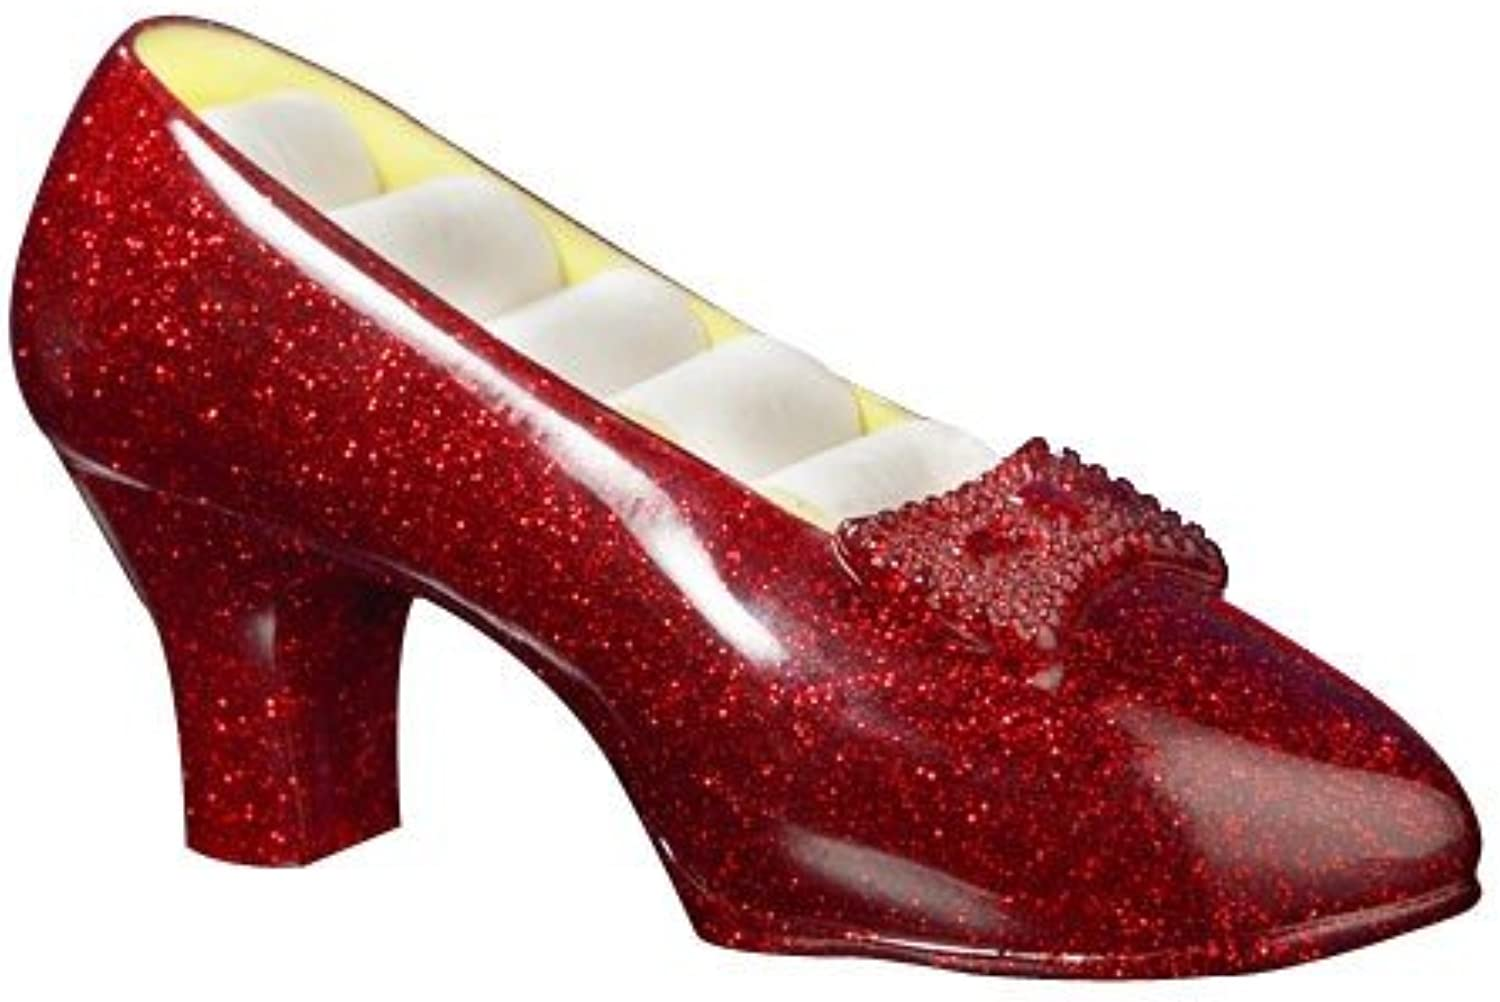 The Wizard of Oz Ruby Slipper Musical Jewelry Holder by The San Francisco Music Box Company